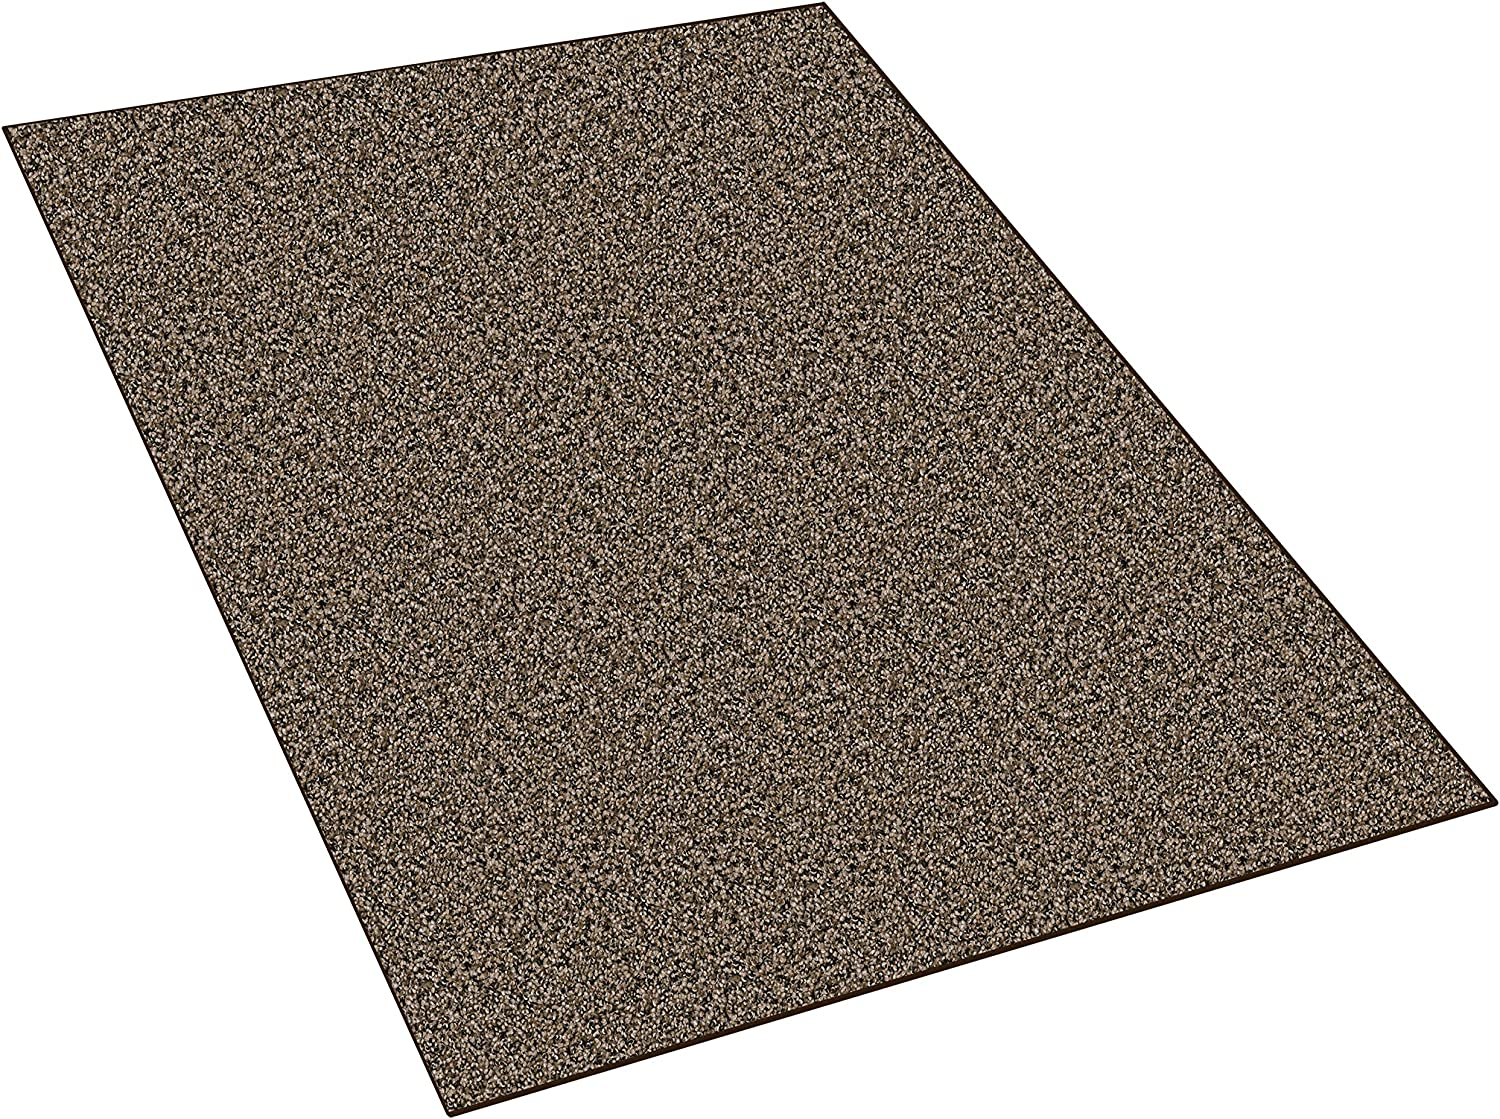 Amazon Com Dream Weaver 12 X14 Indoor Area Rug Toffee 30oz Plush Textured Carpet For Residential Or Commercial Use With Premium Bound Polyester Edges Furniture Decor